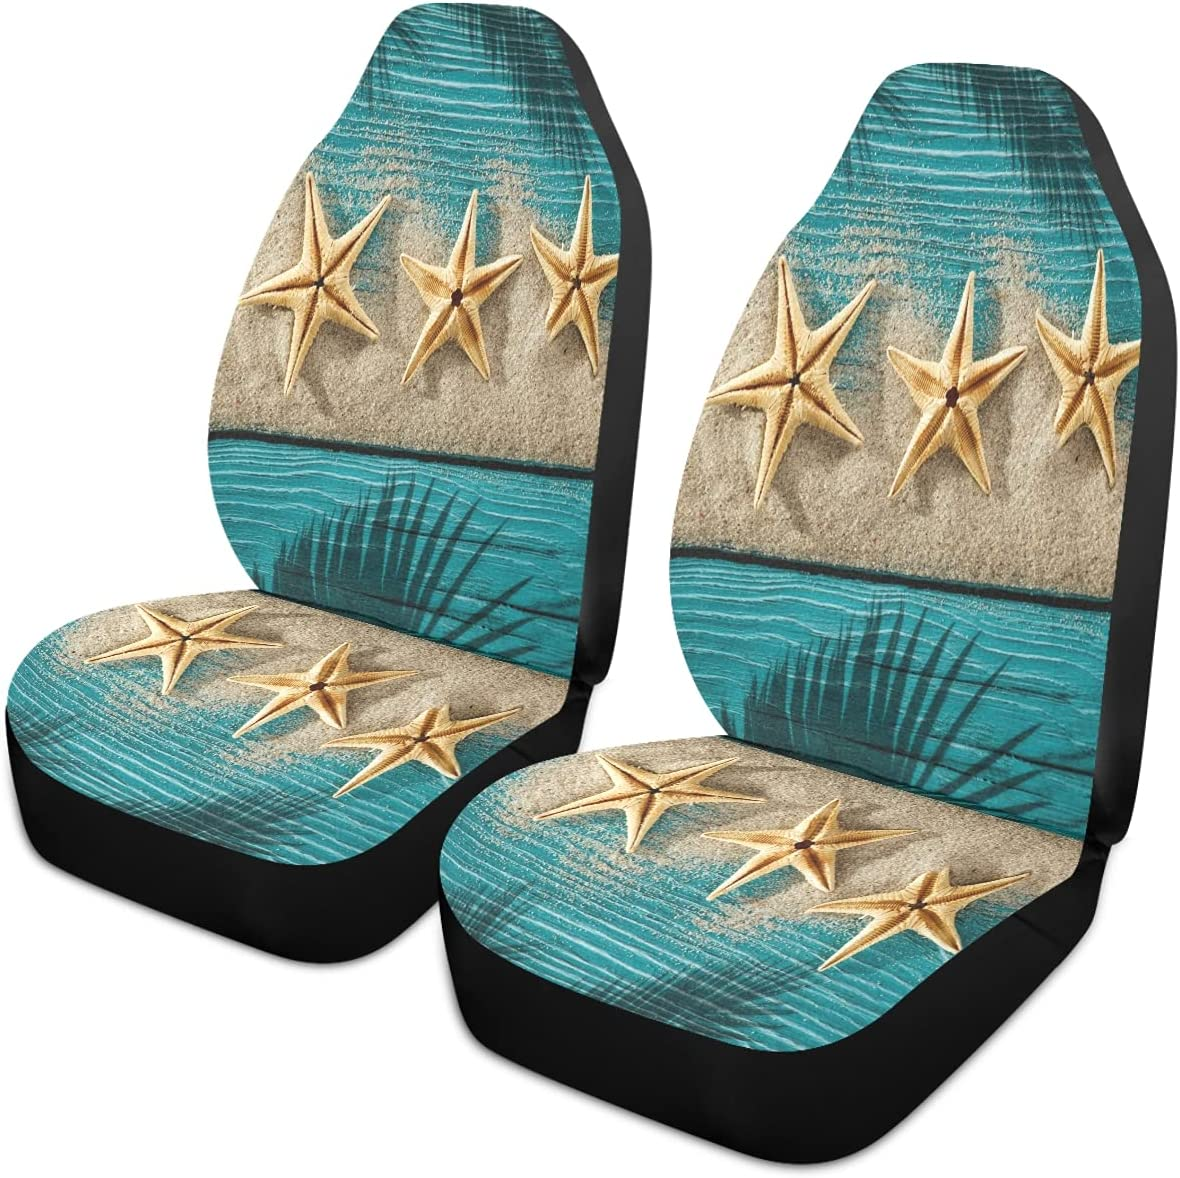 Oarencol Clearance Max 71% OFF SALE Limited time Summer Starfish Rustic Teal Wood Covers Seat Univer Car